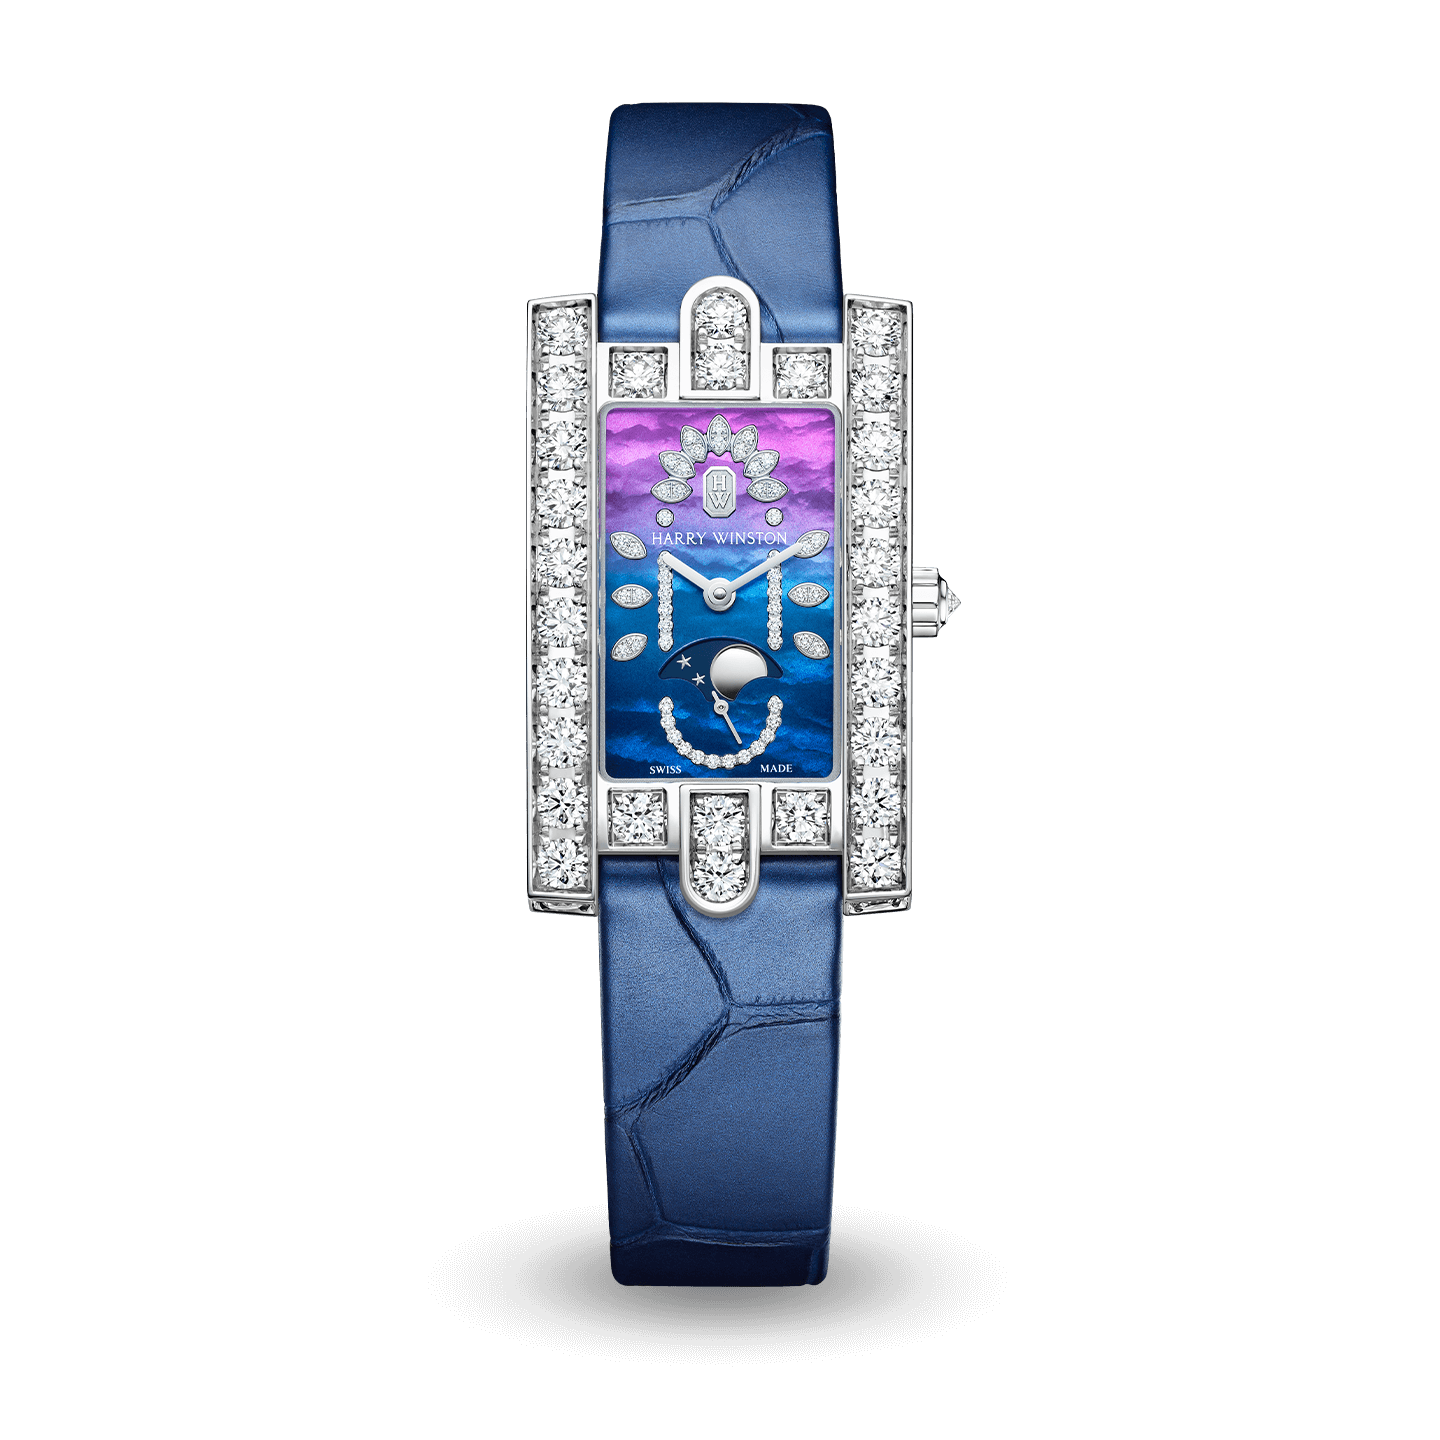 Avenue Classic 20th Anniversary Moon Phase, product image 1